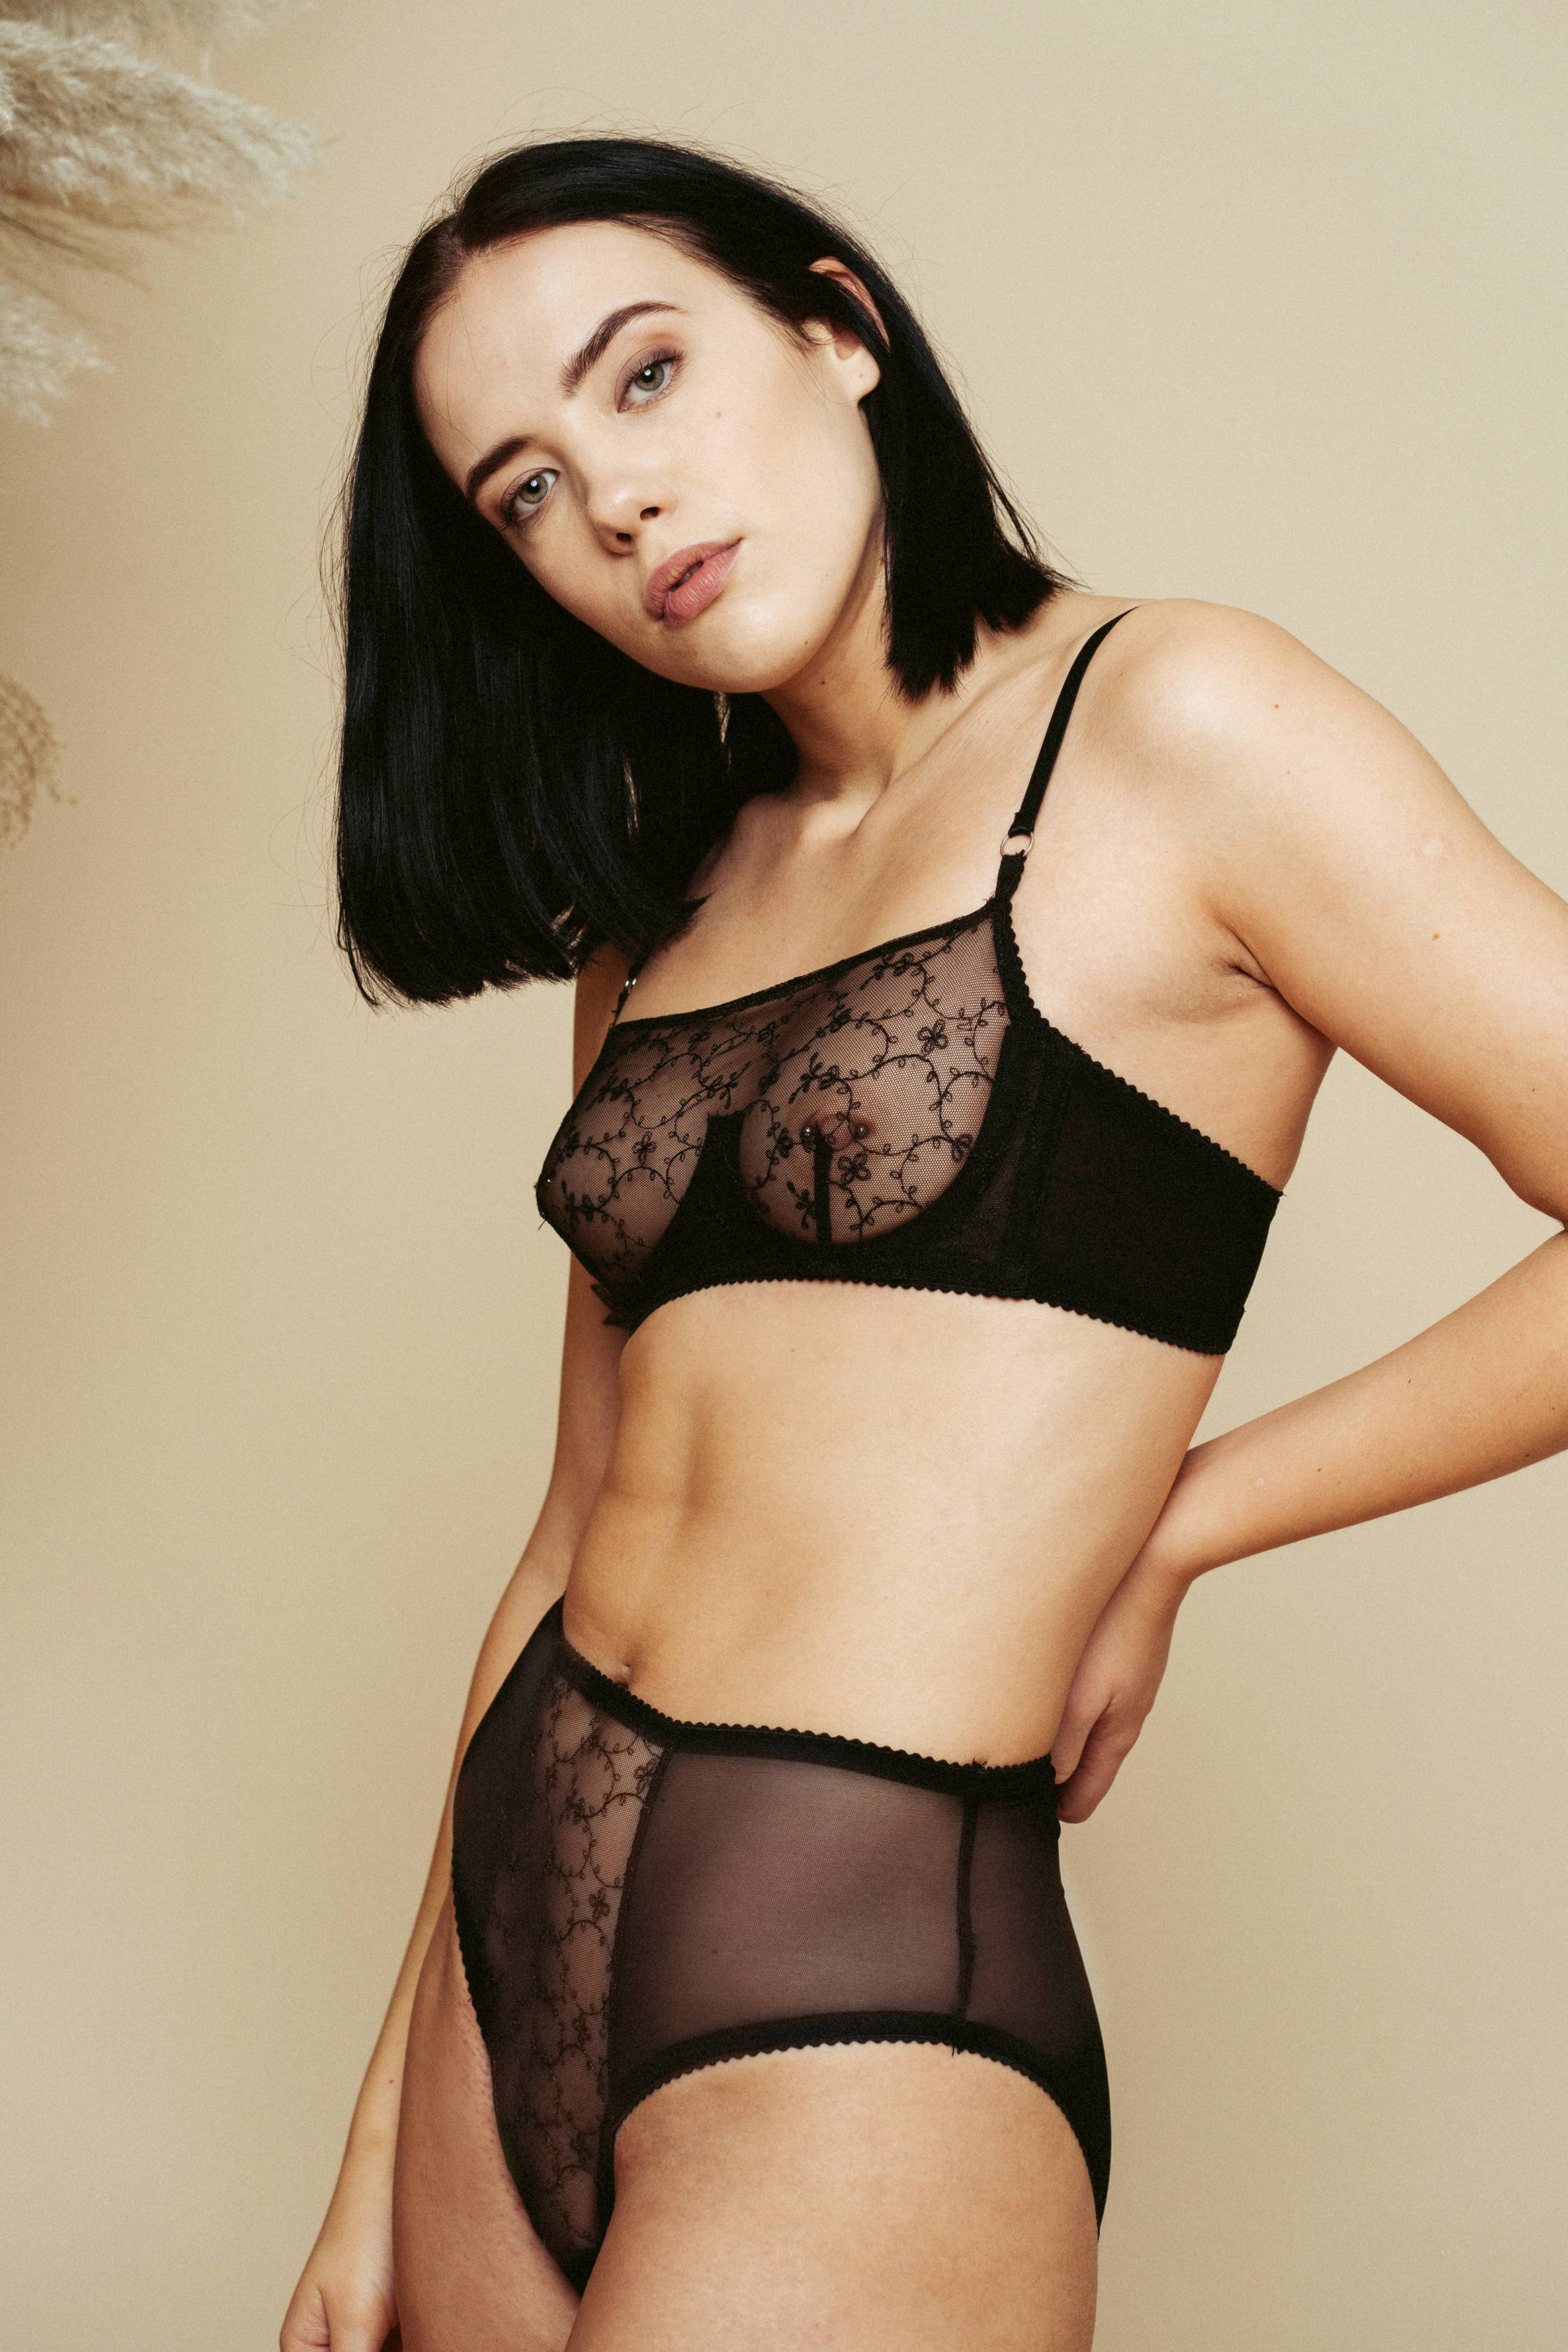 Model wearing the Kauf High Waisted Knicker and Bandeaux Wire Bra in black, with her hand on her hip